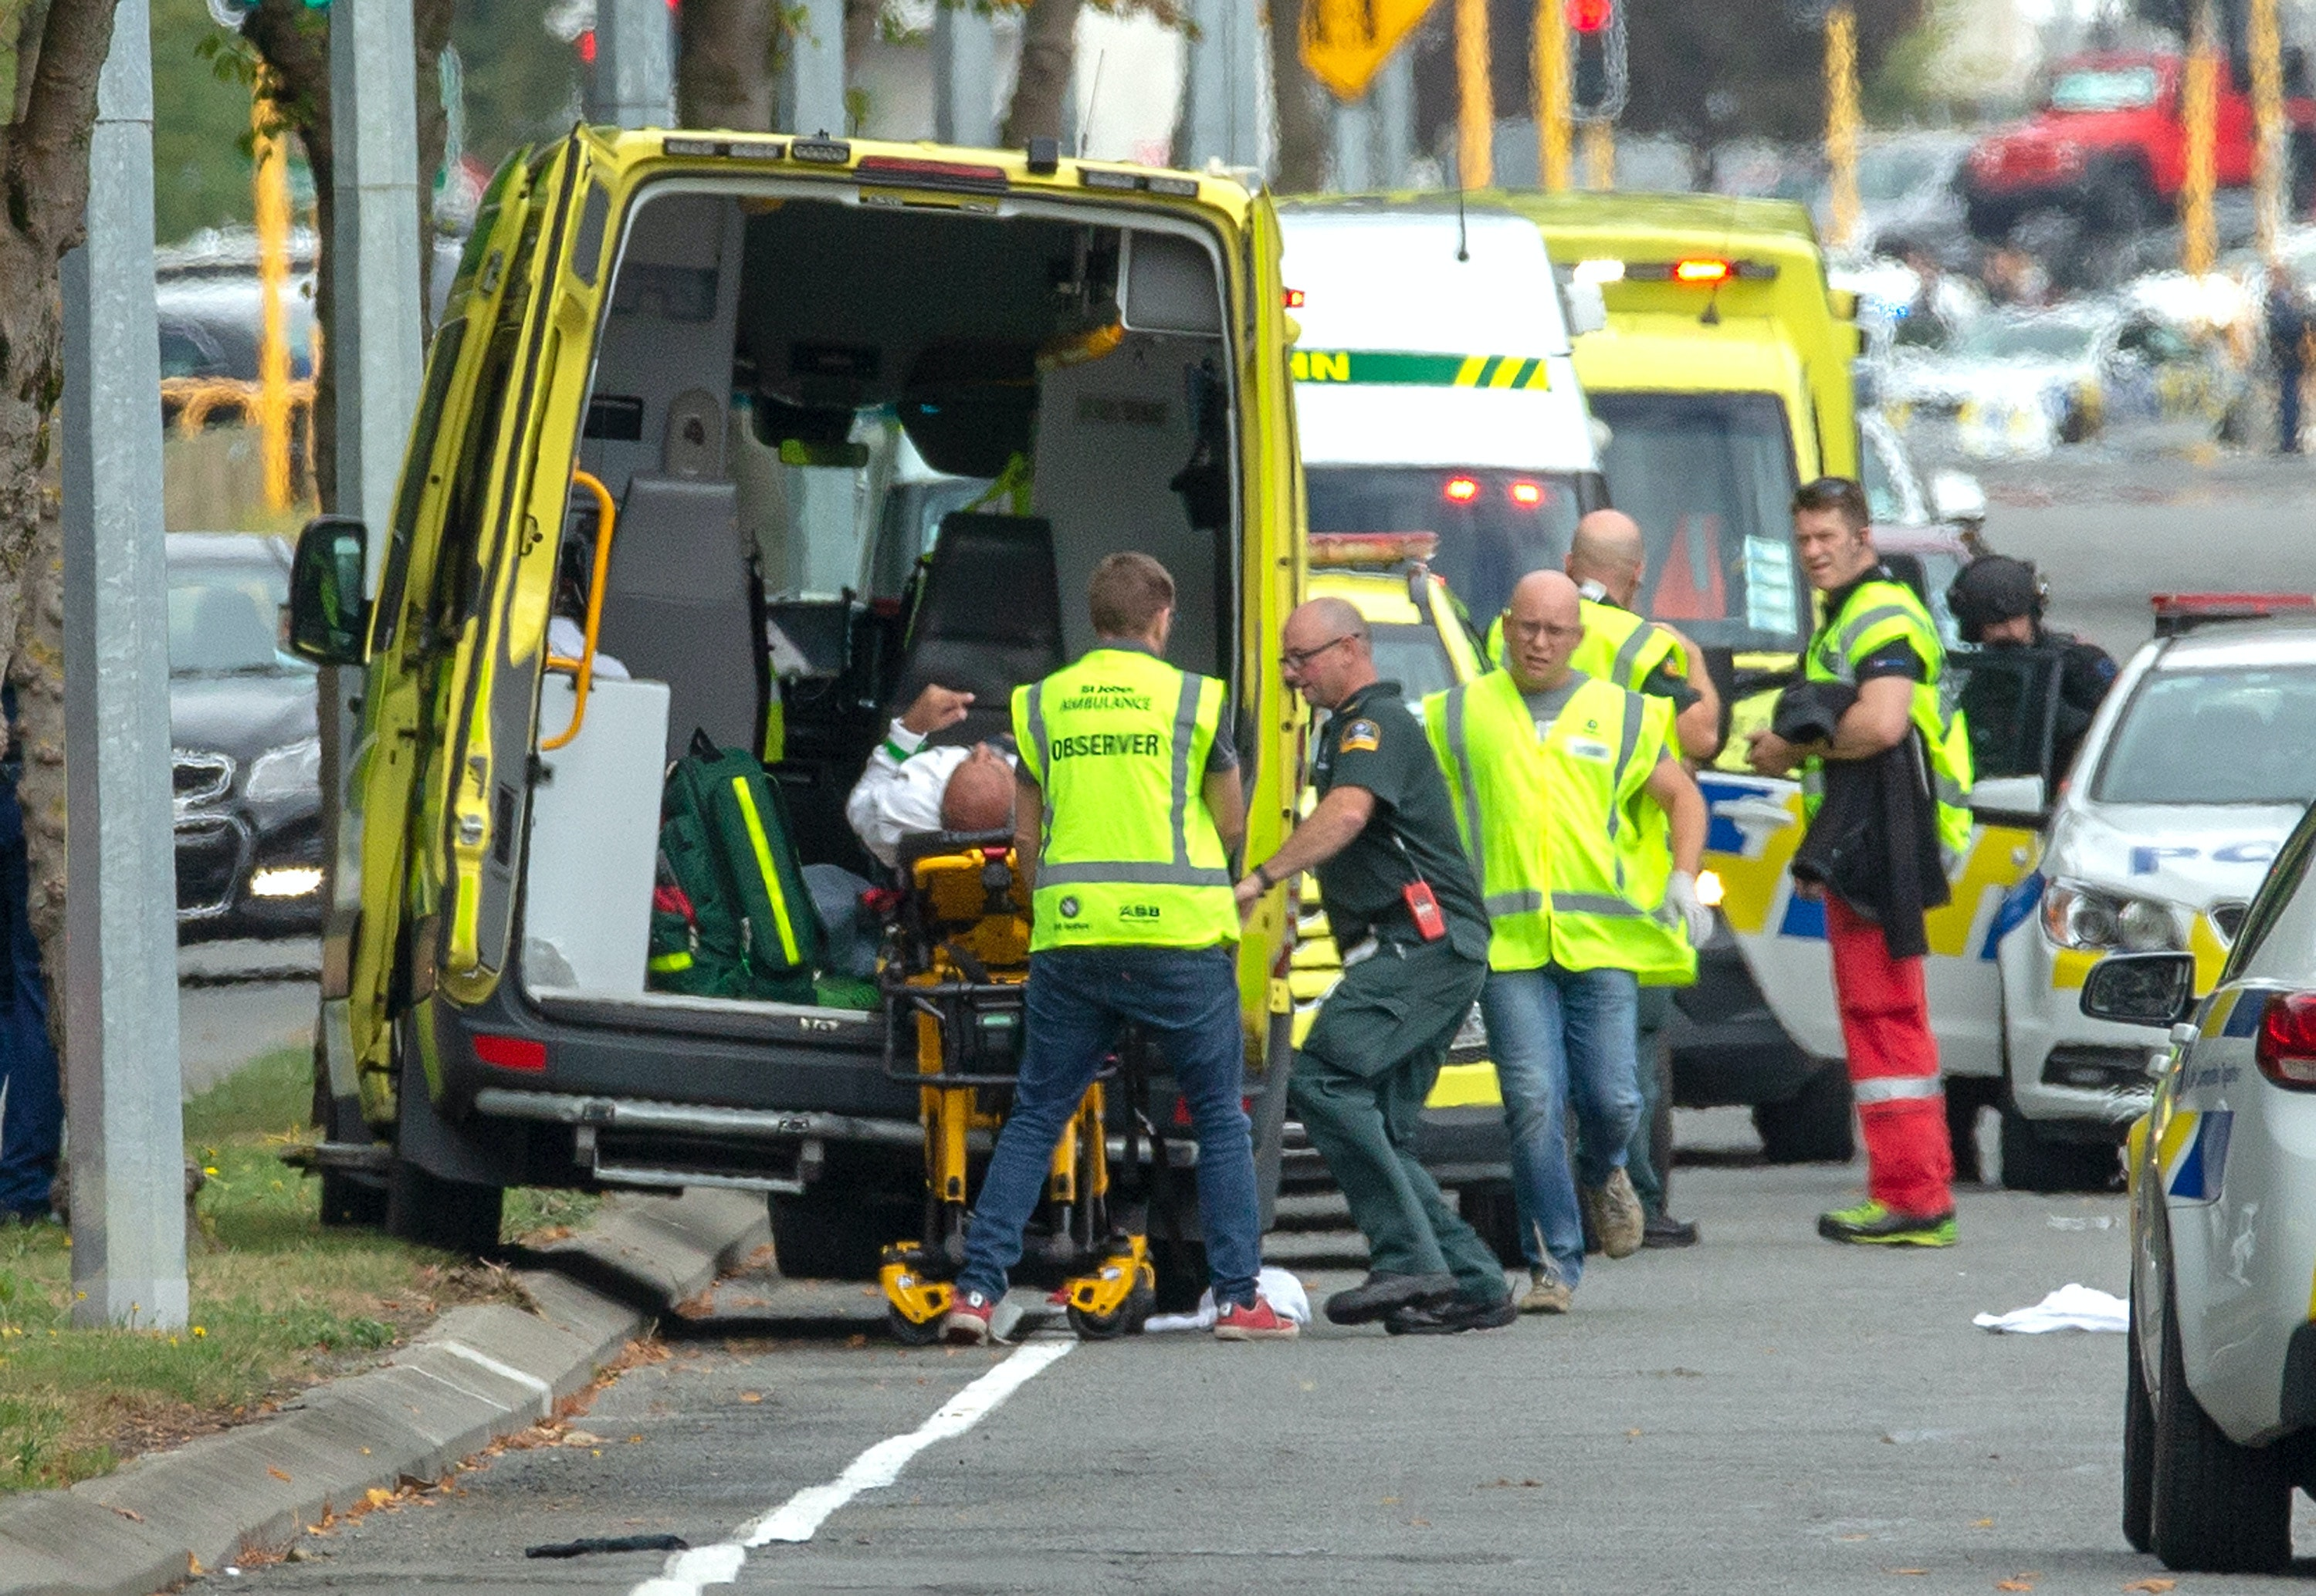 New Zealand Shooter Live Stream Image: Why News Outlets Should Think Twice About Republishing The